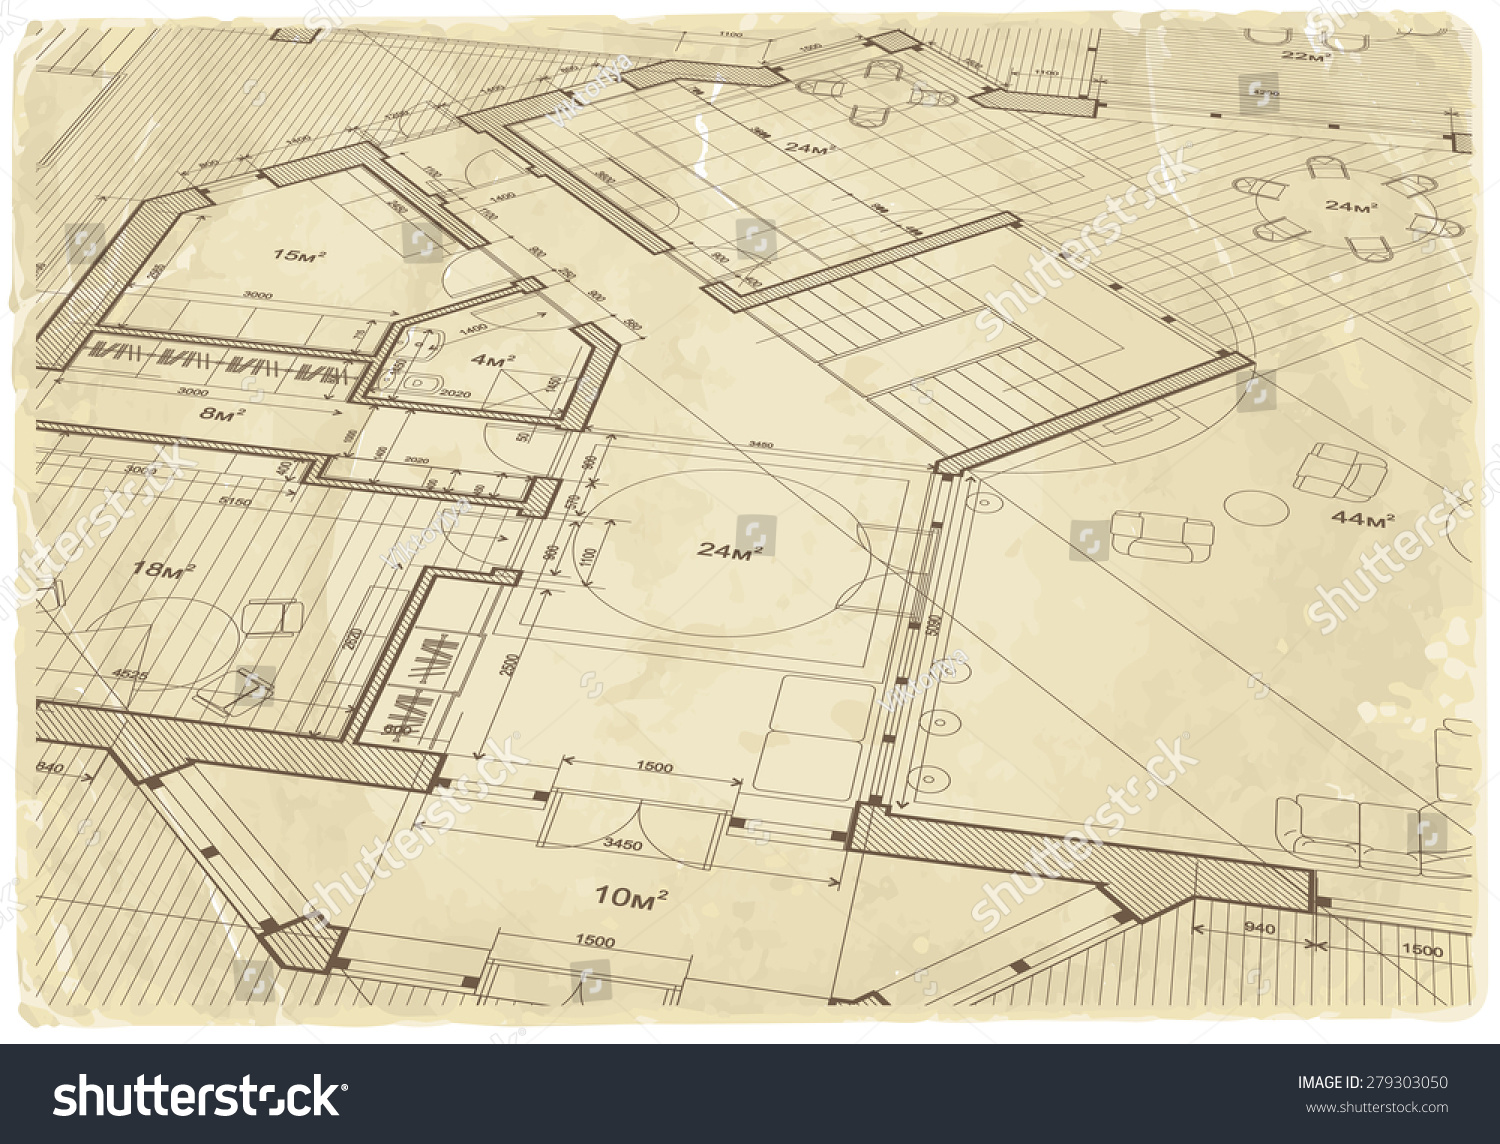 Architecture blueprint house plan old paper stock illustration architecture blueprint house plan old paper background malvernweather Choice Image